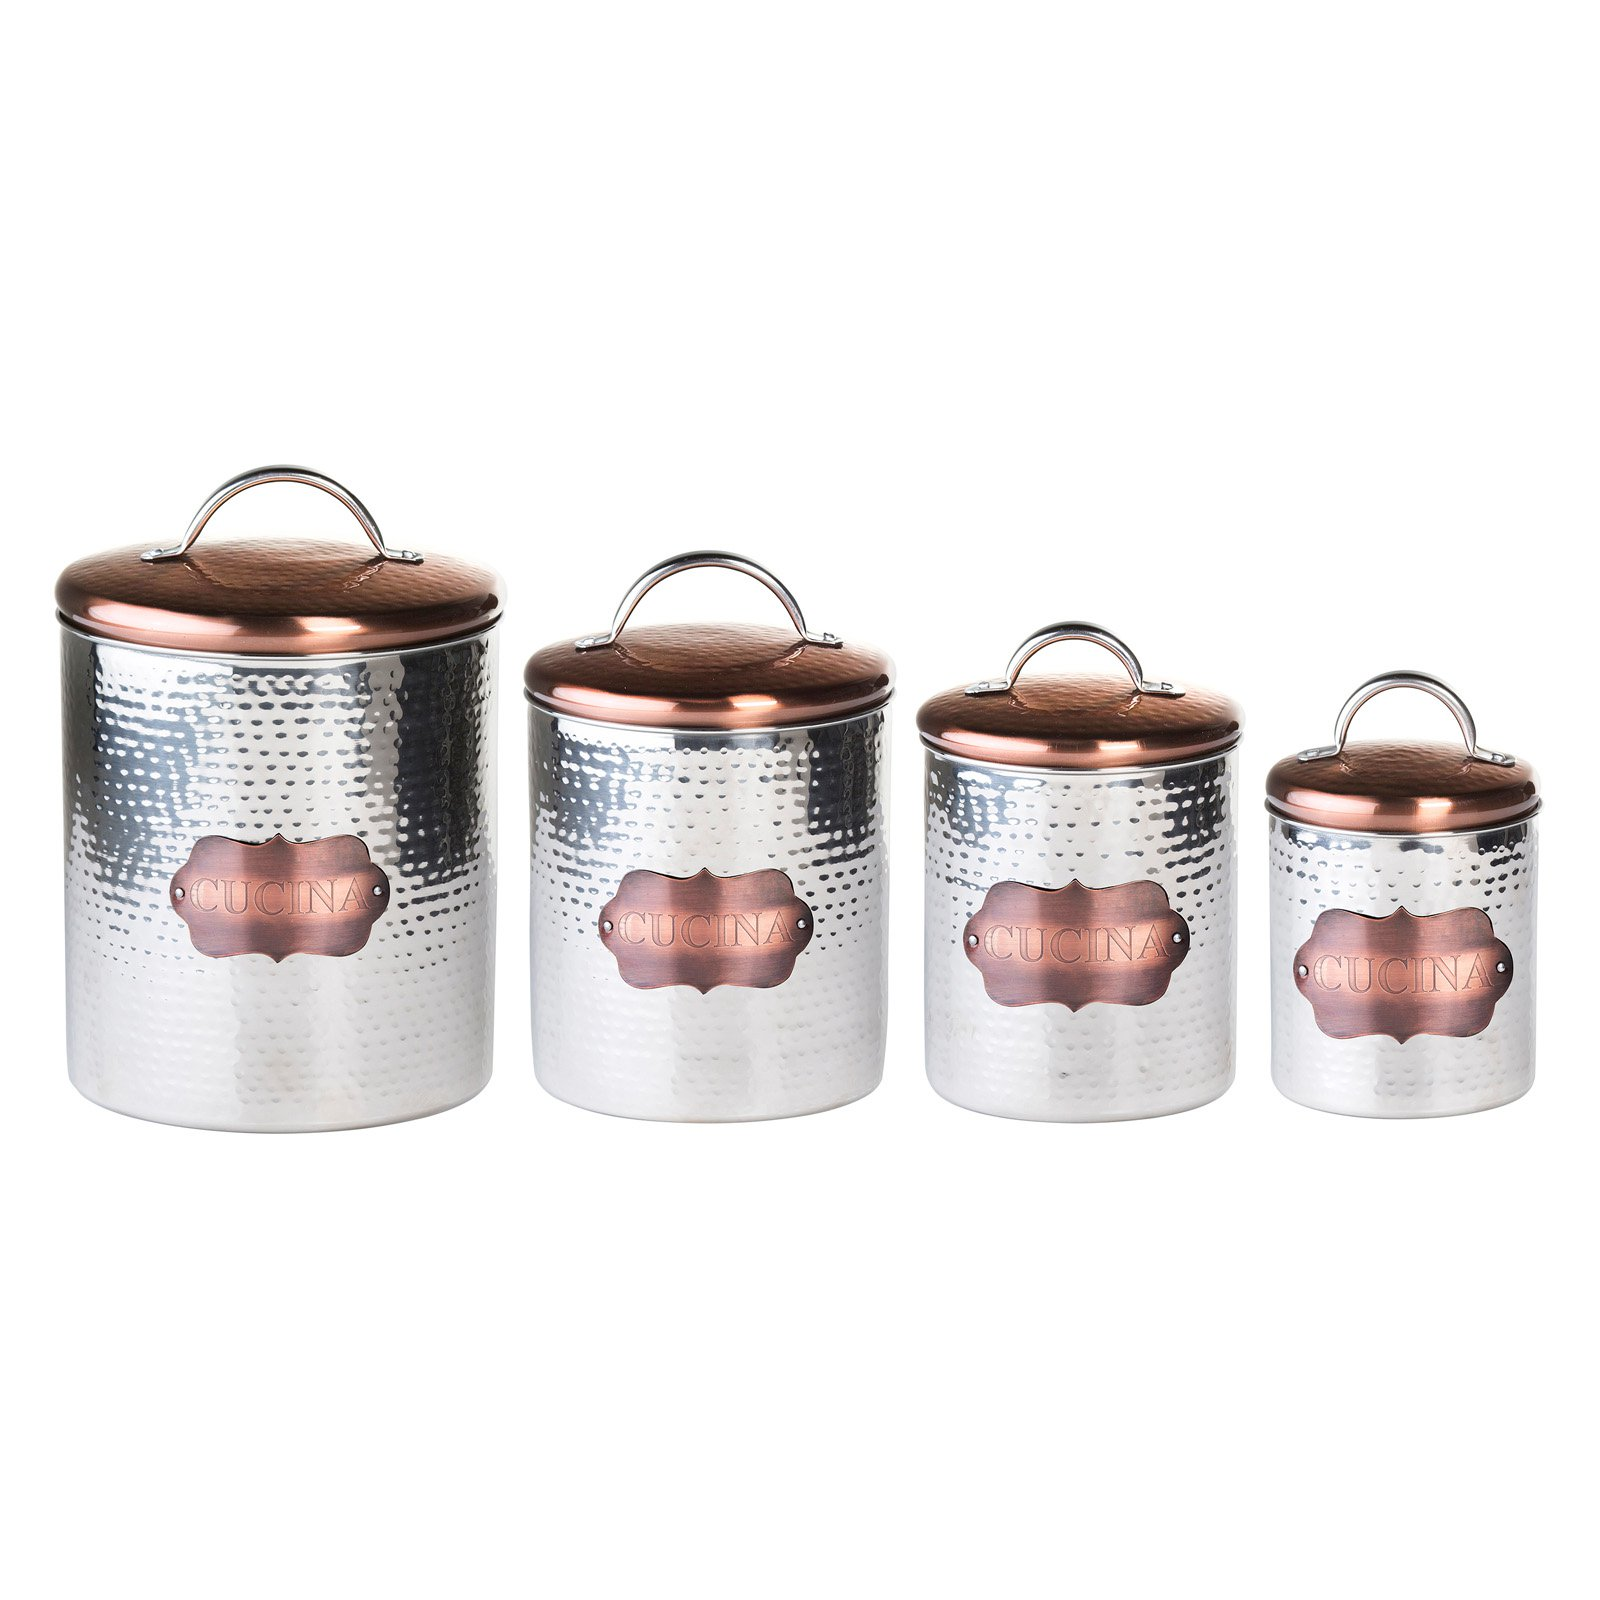 global amici cucina hammered metal canisters walmart com